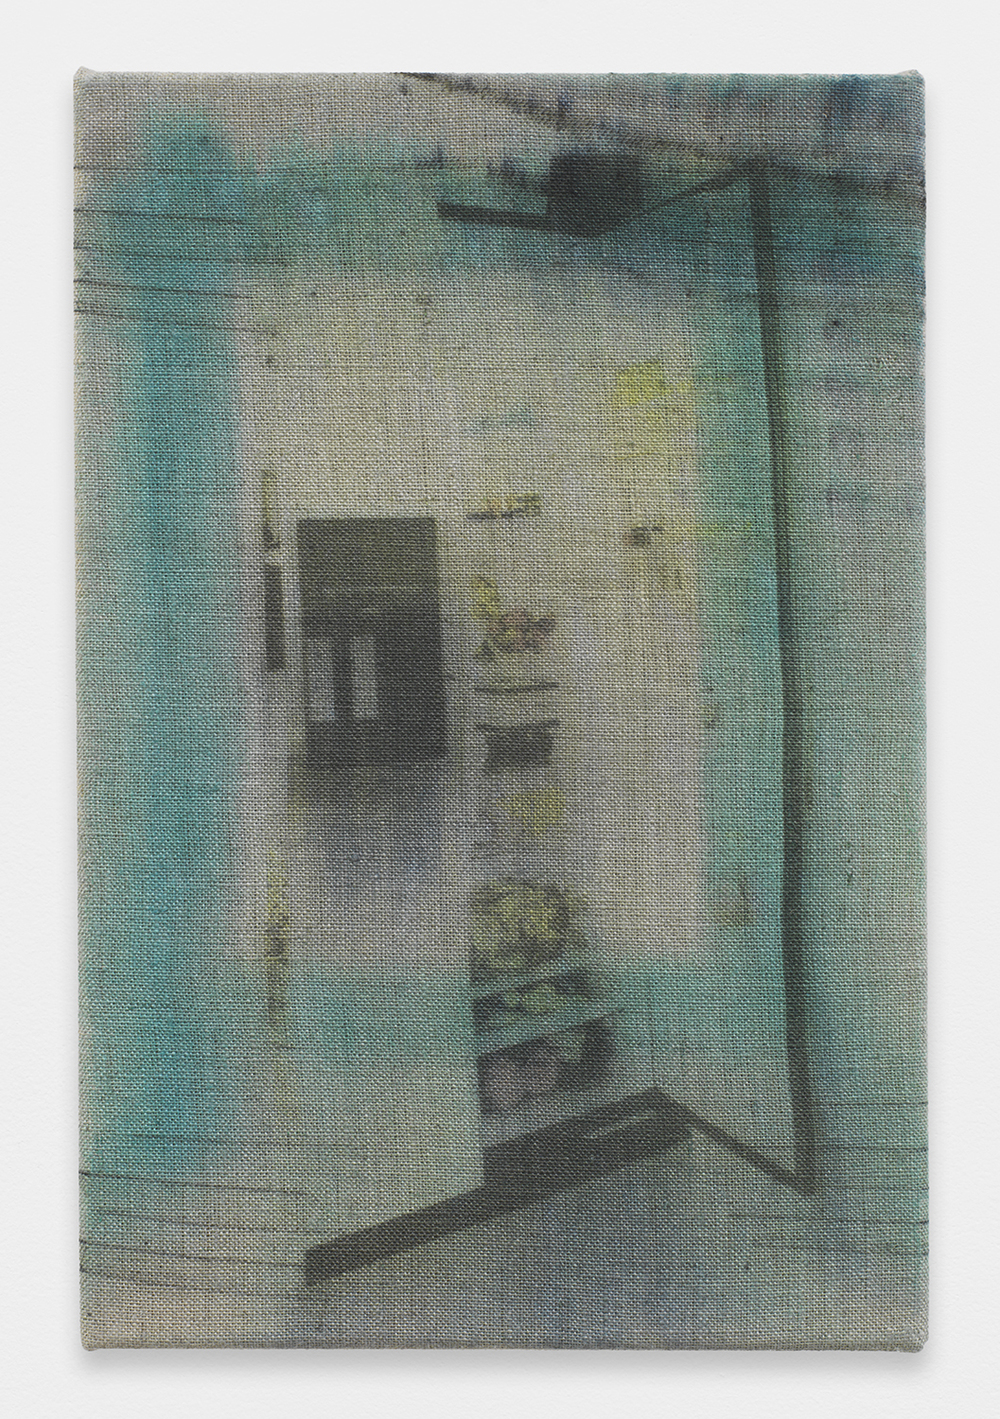 AUGUSTUS THOMPSON IKEA090 (FridgeCrop), 2013 Inkjet on linen 12 x 8 inches